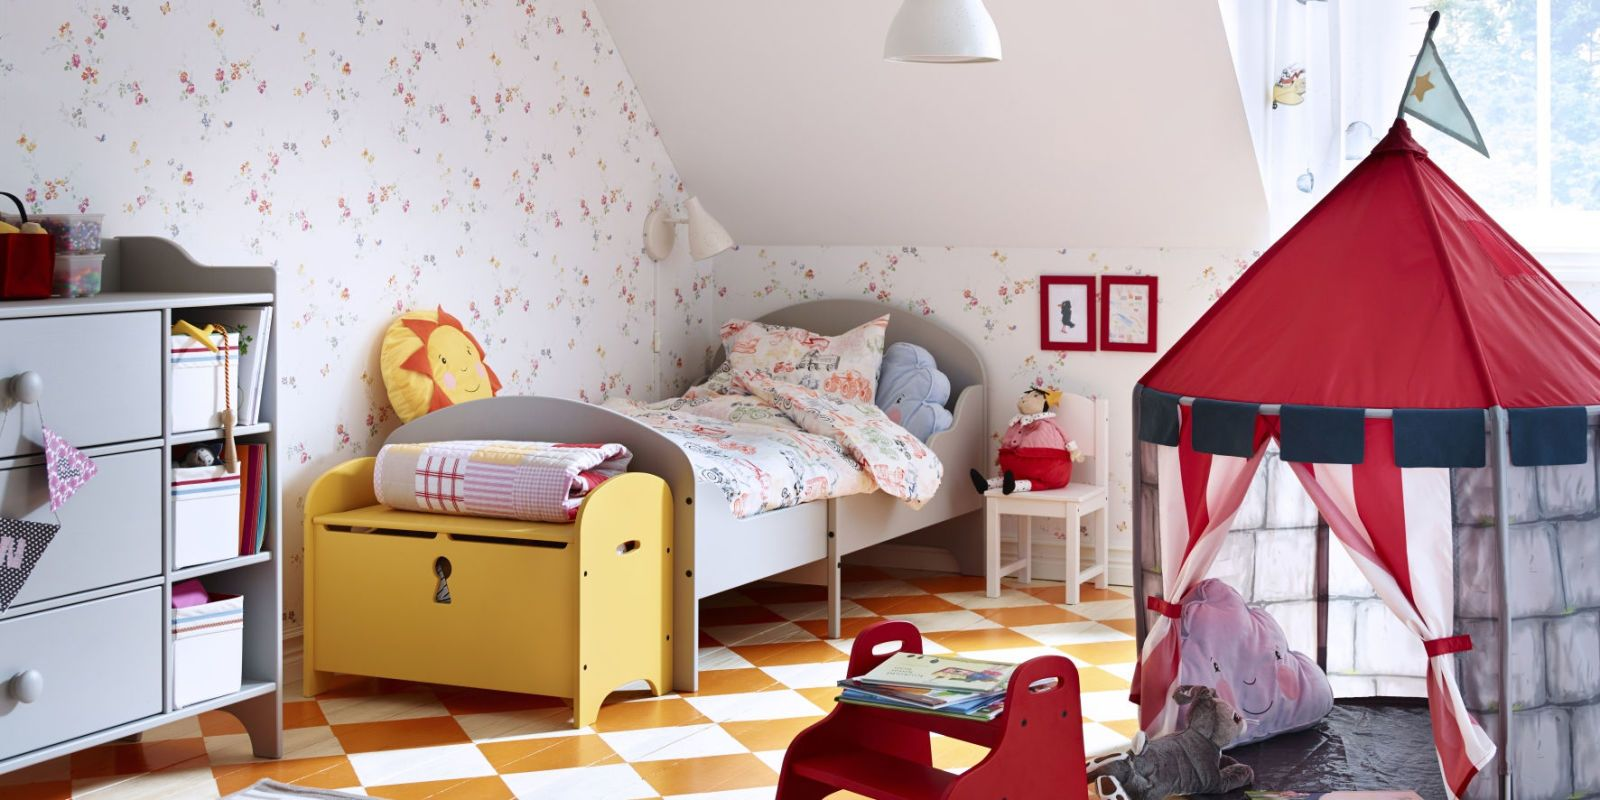 Ordinaire Ikea Red Bedroom Play Tent